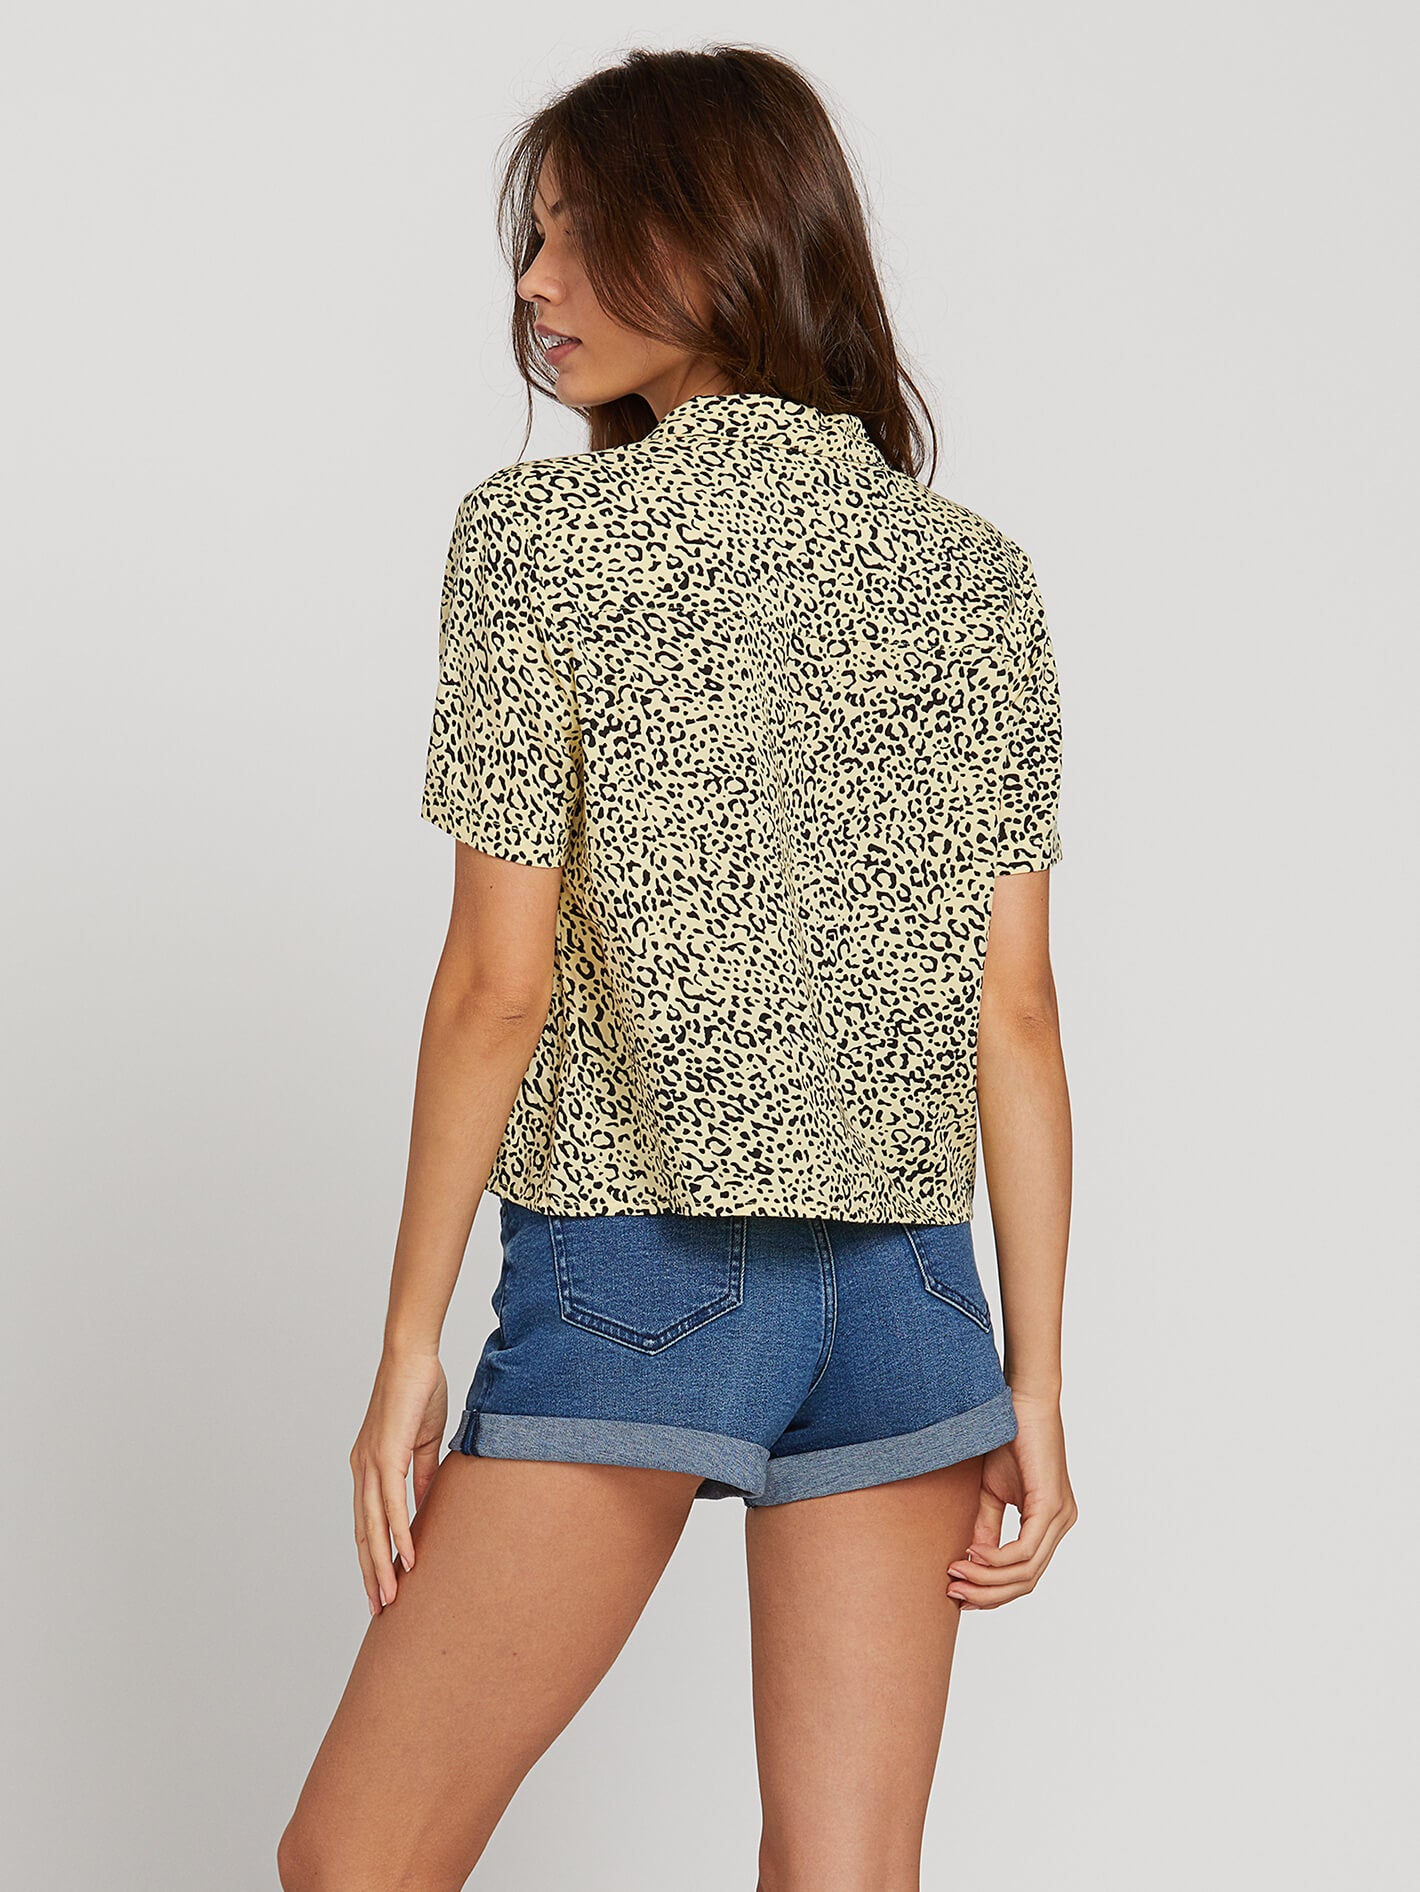 de1365ee Gen Wow Short Sleeve Shirt - Leopard in LEOPARD - Alternative View